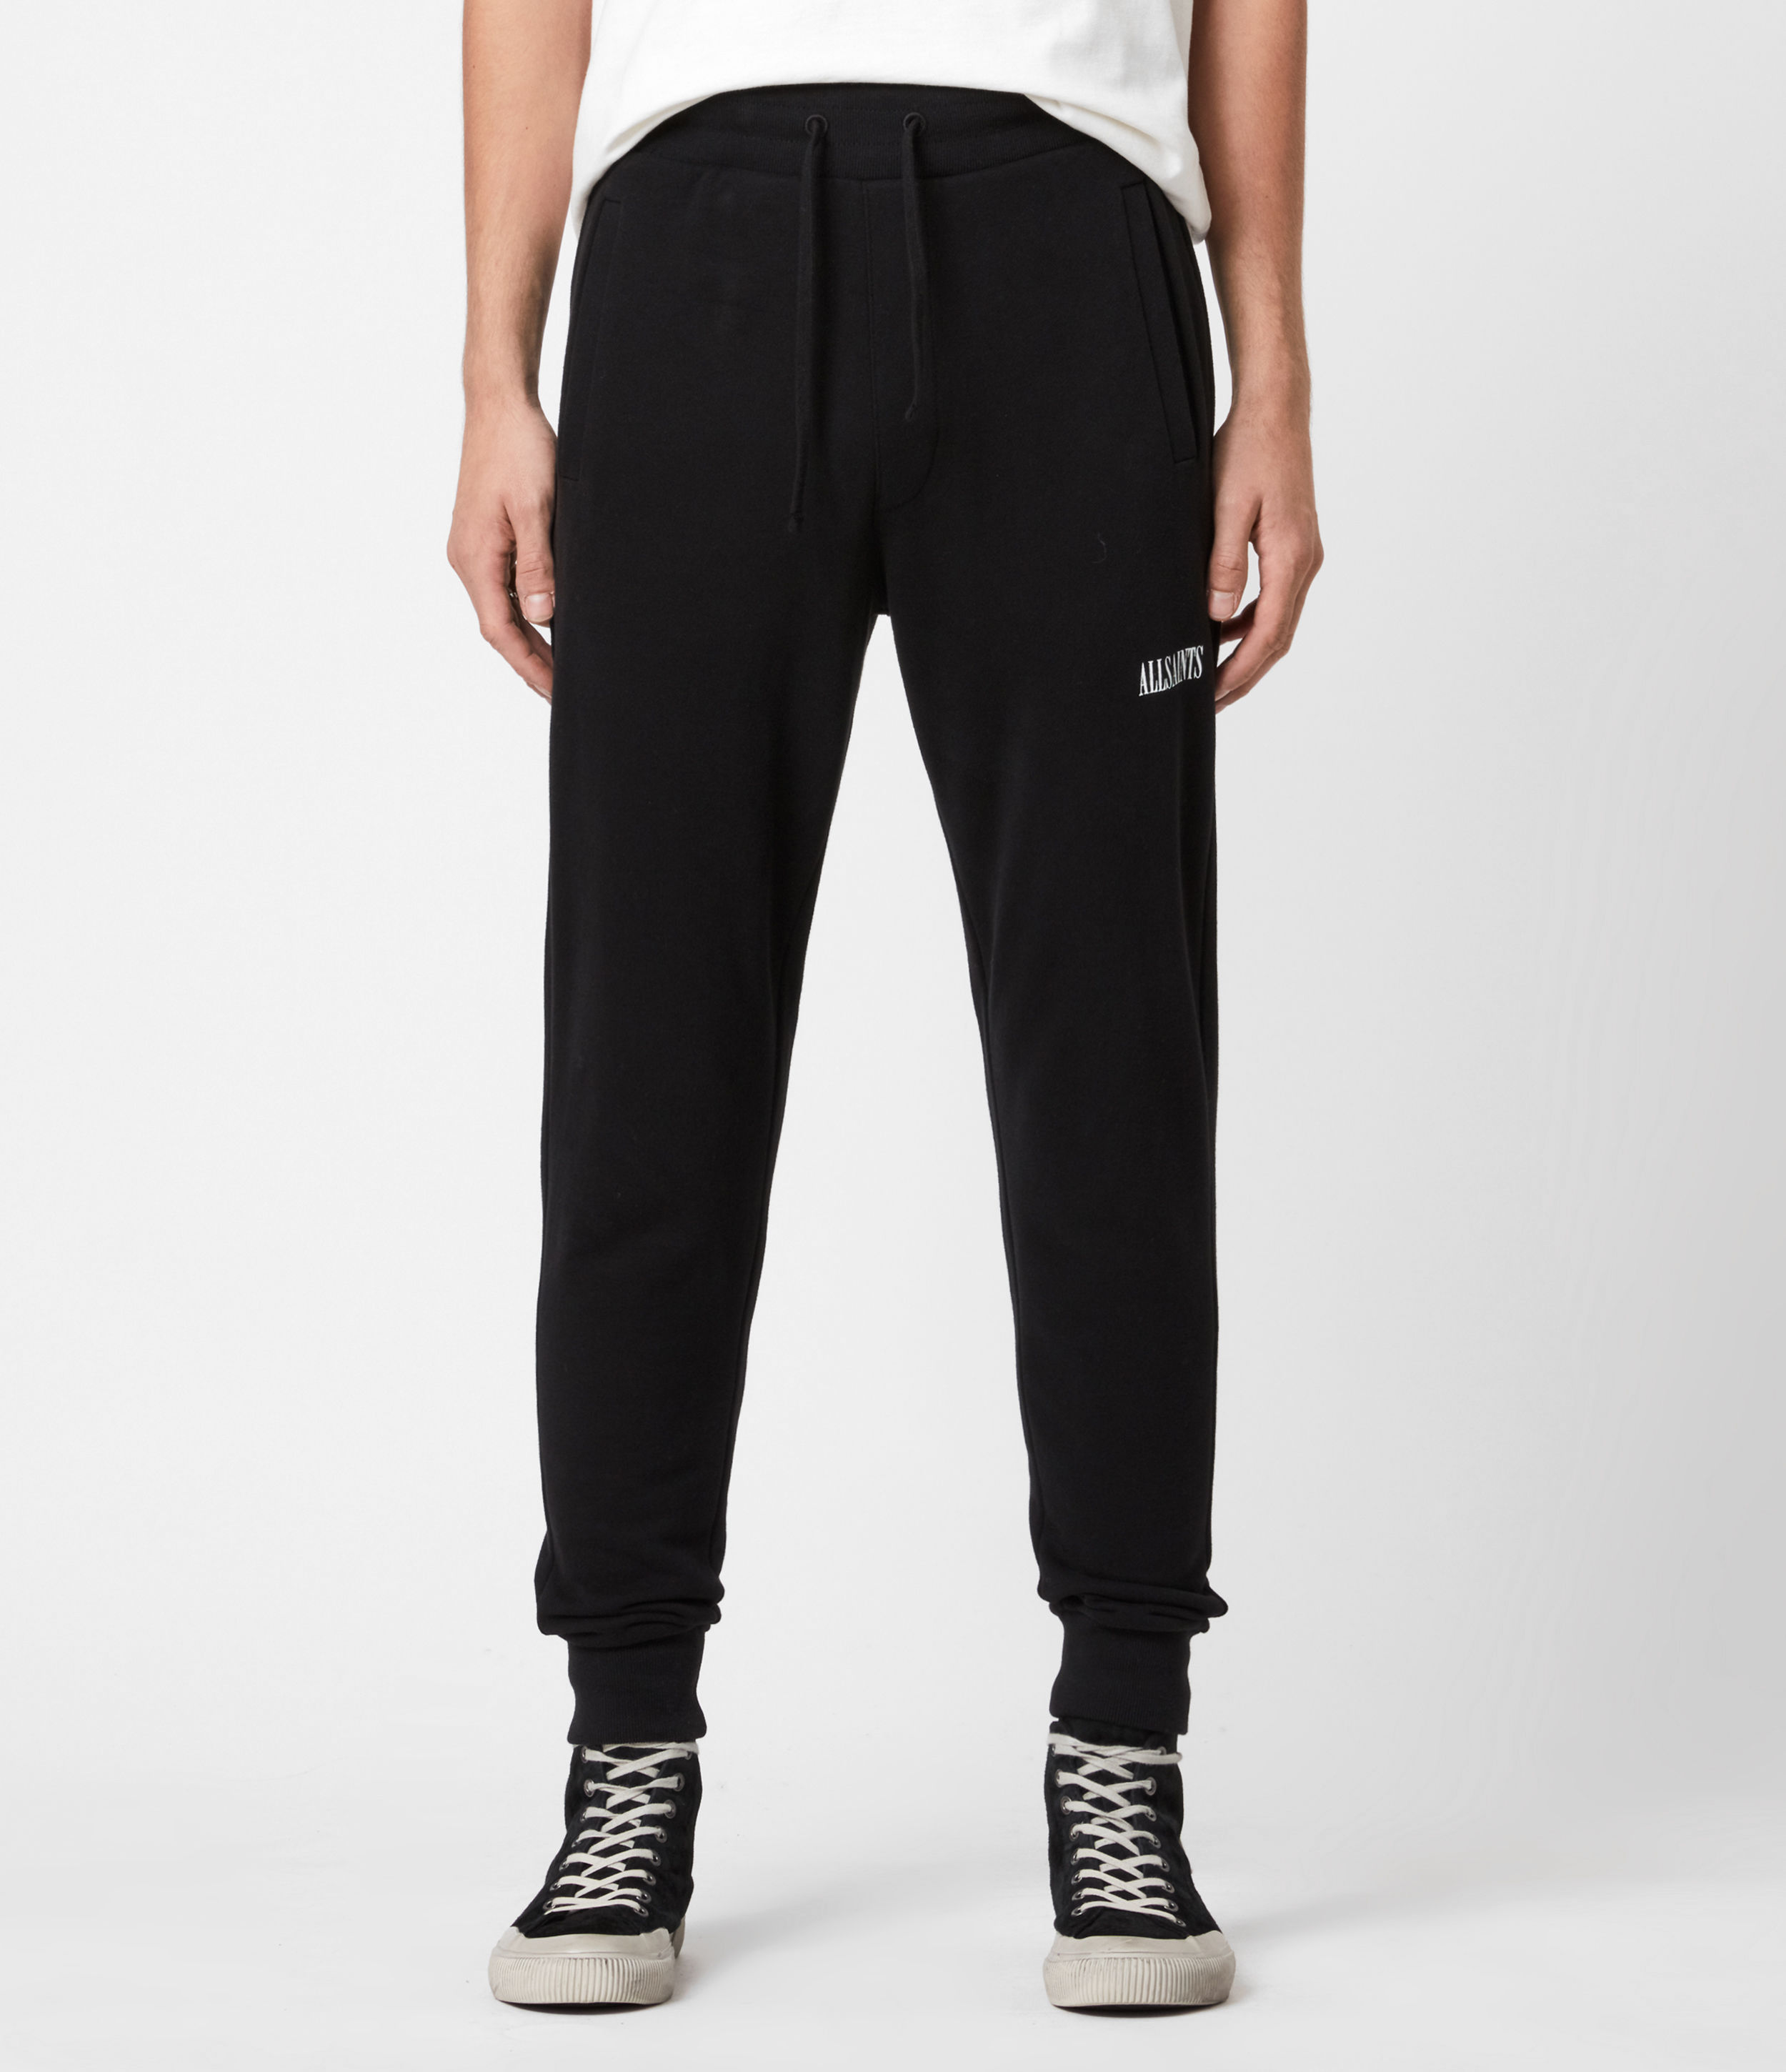 AllSaints State Slim Cuffed Sweatpants